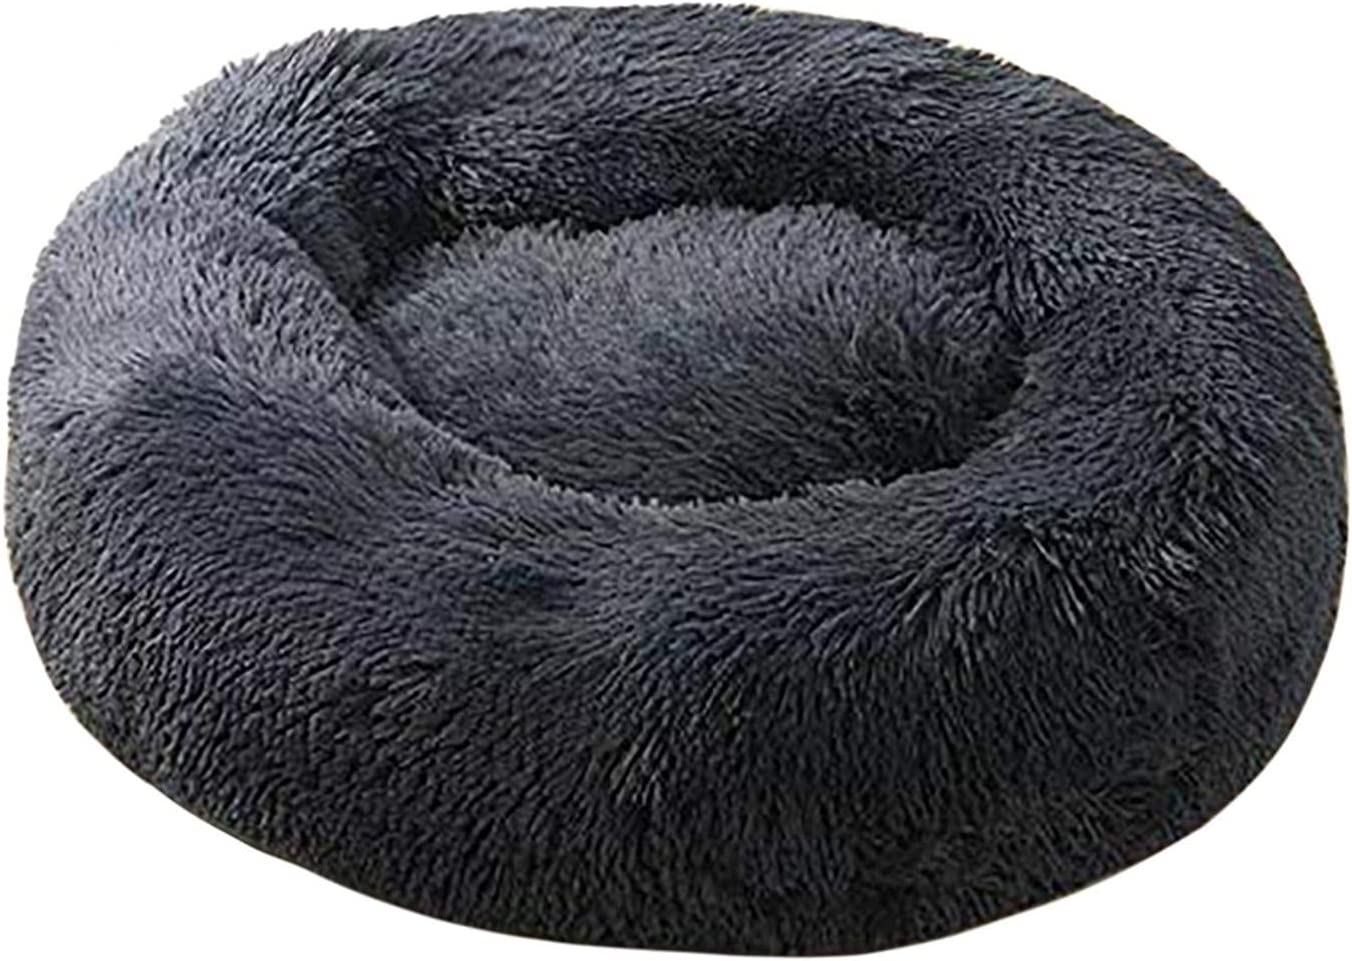 Fashion San Francisco Mall Dog Limited time trial price Bed Kennel Small Cat Soft Puppy Round Pet House